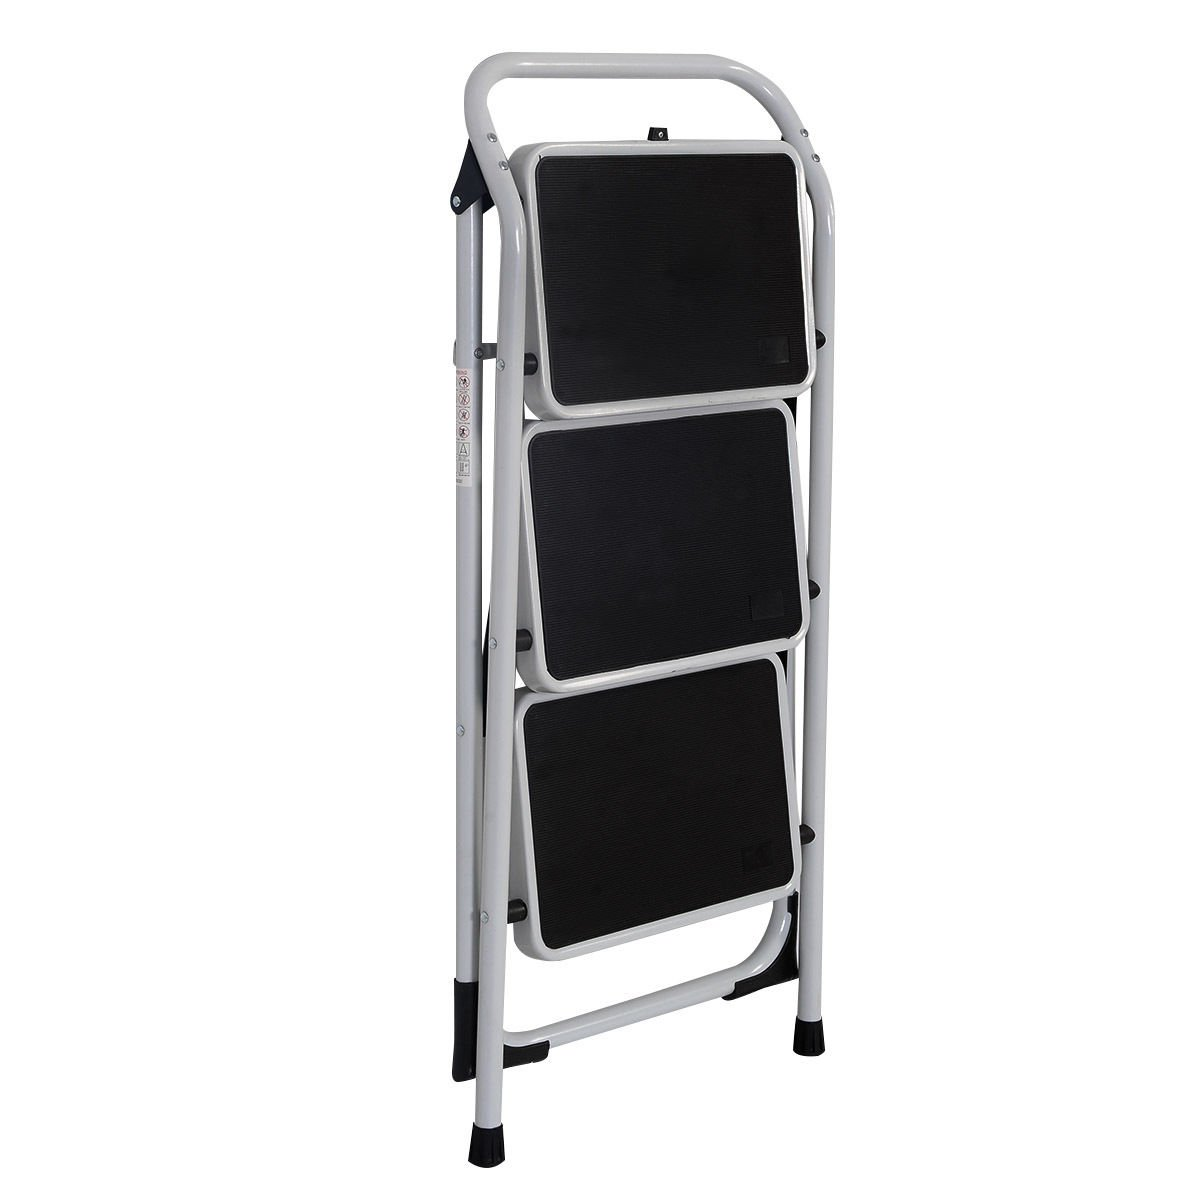 Z ZTDM Portable 3 Step Ladder with 330lbs Capacity Platform Father's Day Gift Lightweight Short Handrail Iron Folding Stool by Z ZTDM (Image #3)